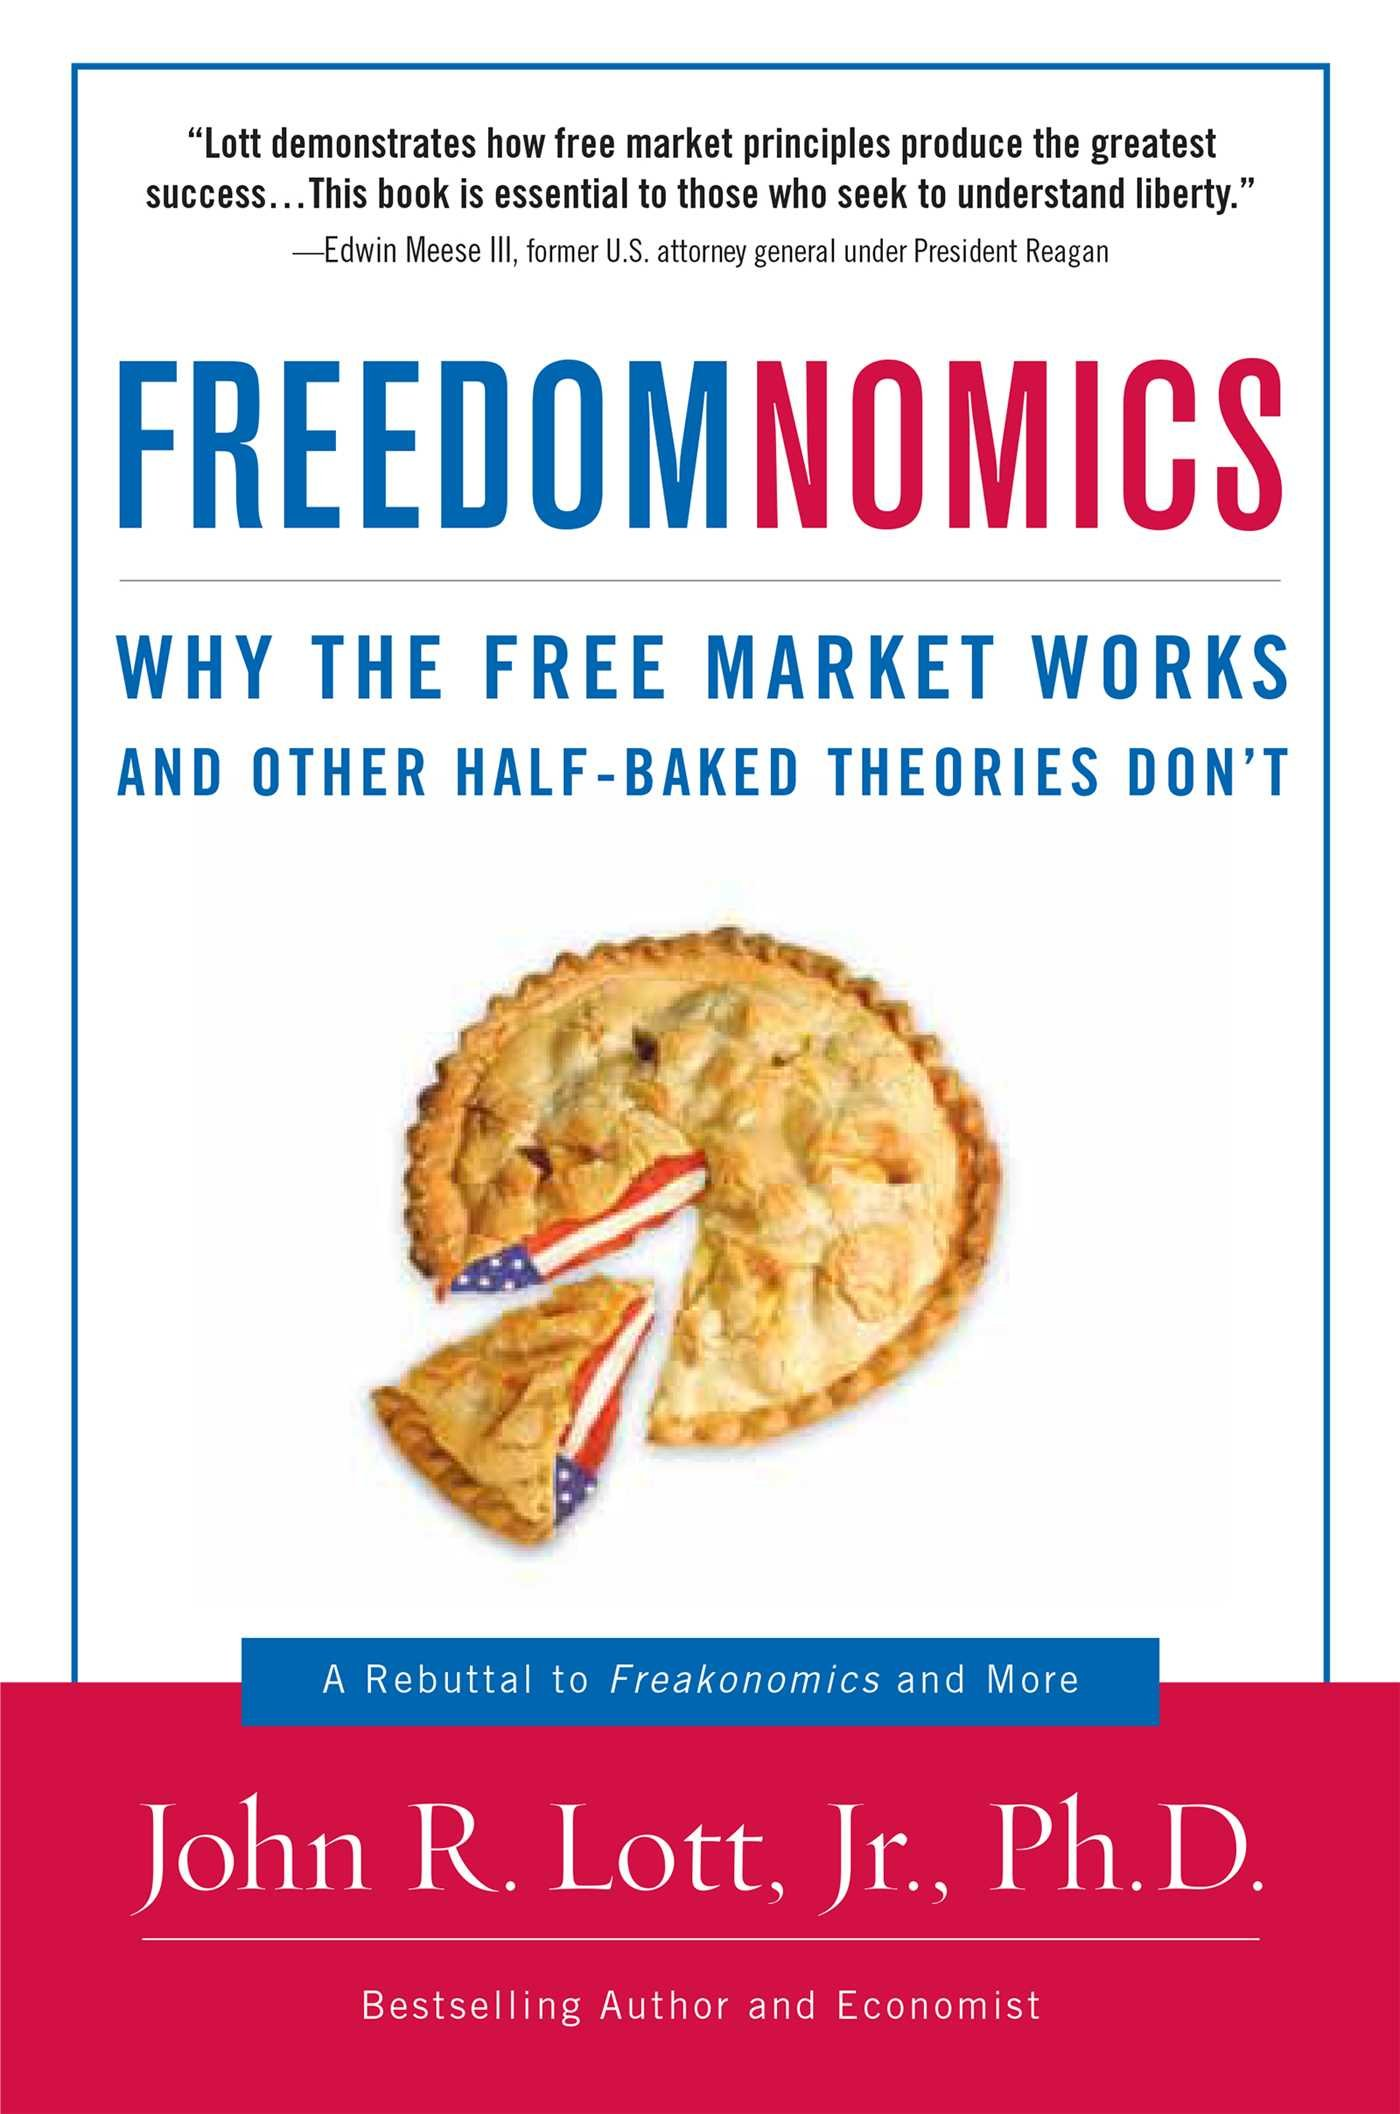 Download Freedomnomics: Why the Free Market Works and Other Half-Baked Theories Don't pdf